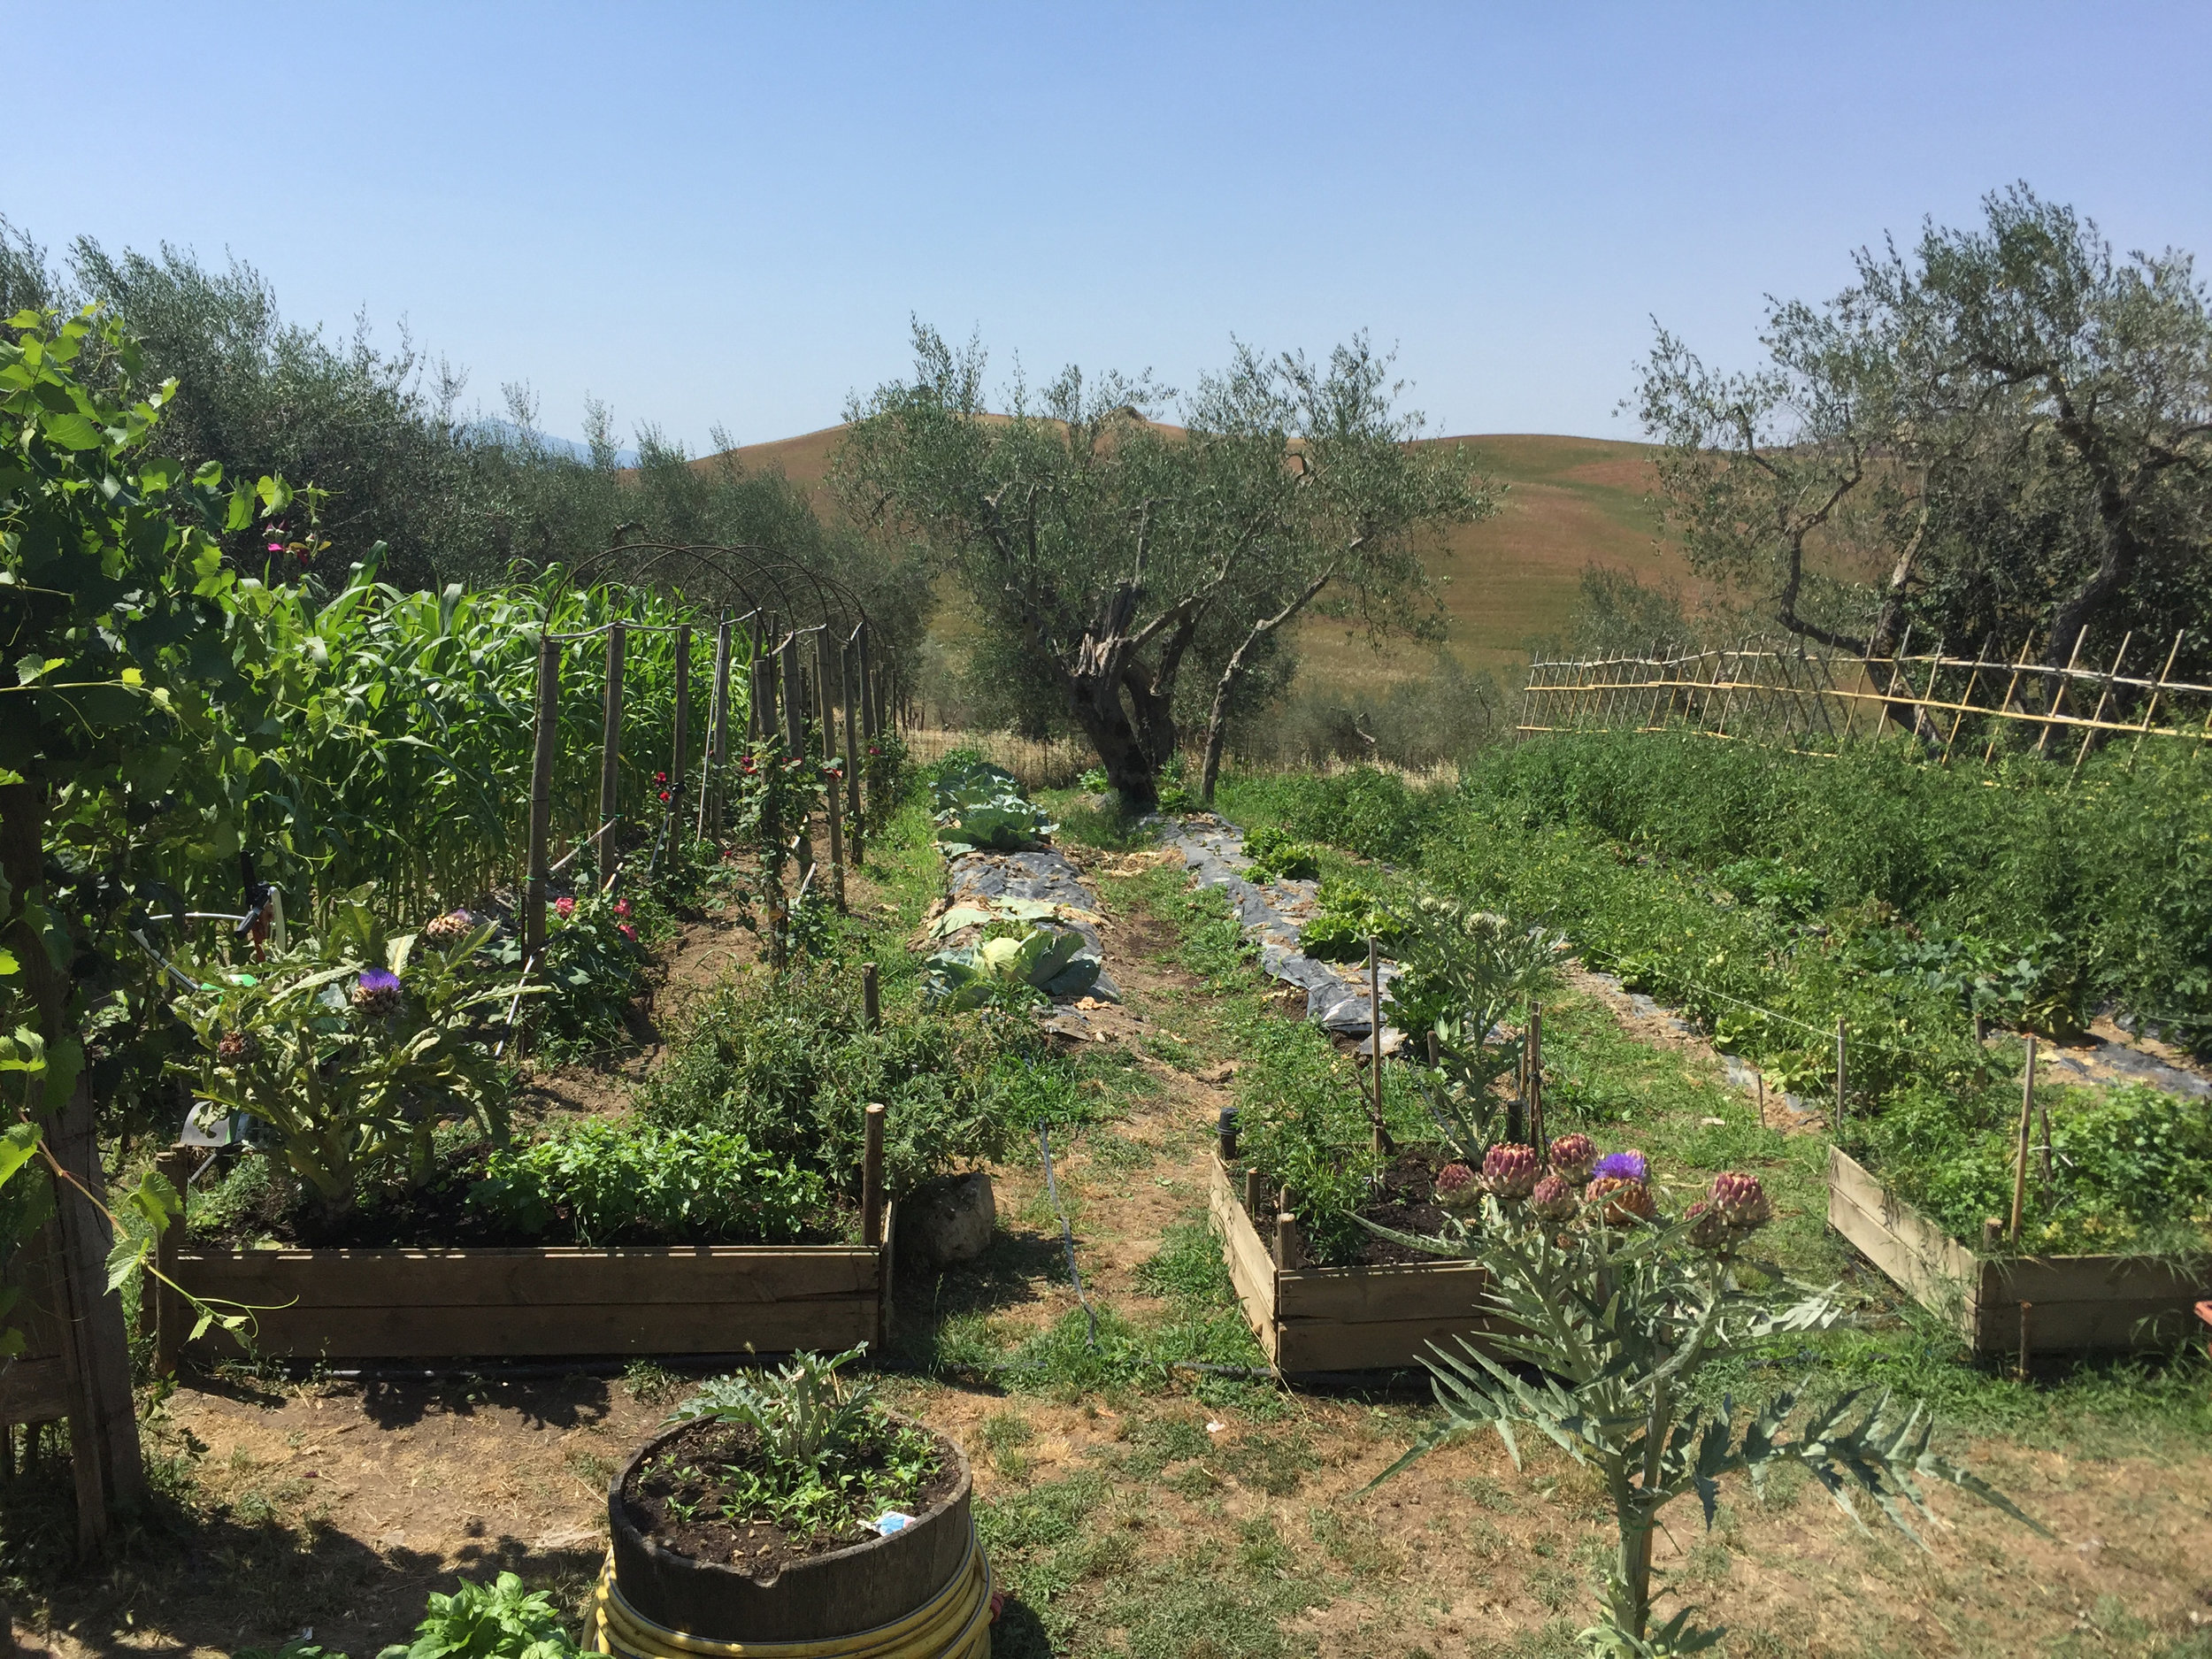 ORGANIC OLIVE OIL FARM AND GARDEN IN TUSCANY